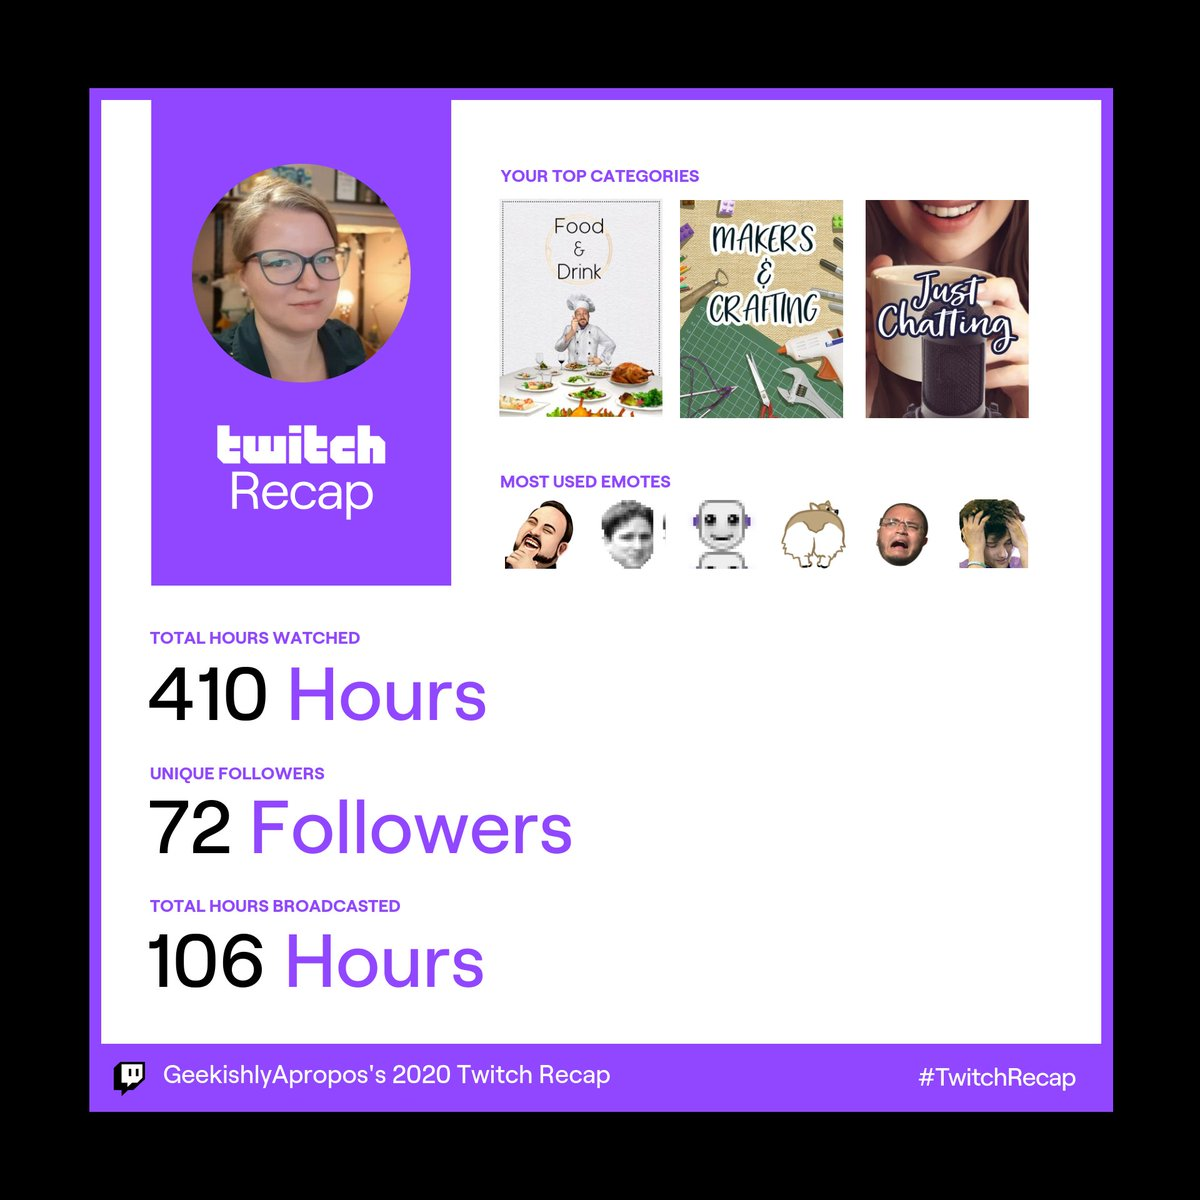 I work 40 hours a week, freelance, am married, and do a lot of housework. So my stats are low. Streaming isn't my #1 priority and often my mental and physical health say nope. But I enjoy what I can. So here's hoping to more cooking, crafting, and chatting this year. #TwitchRecap